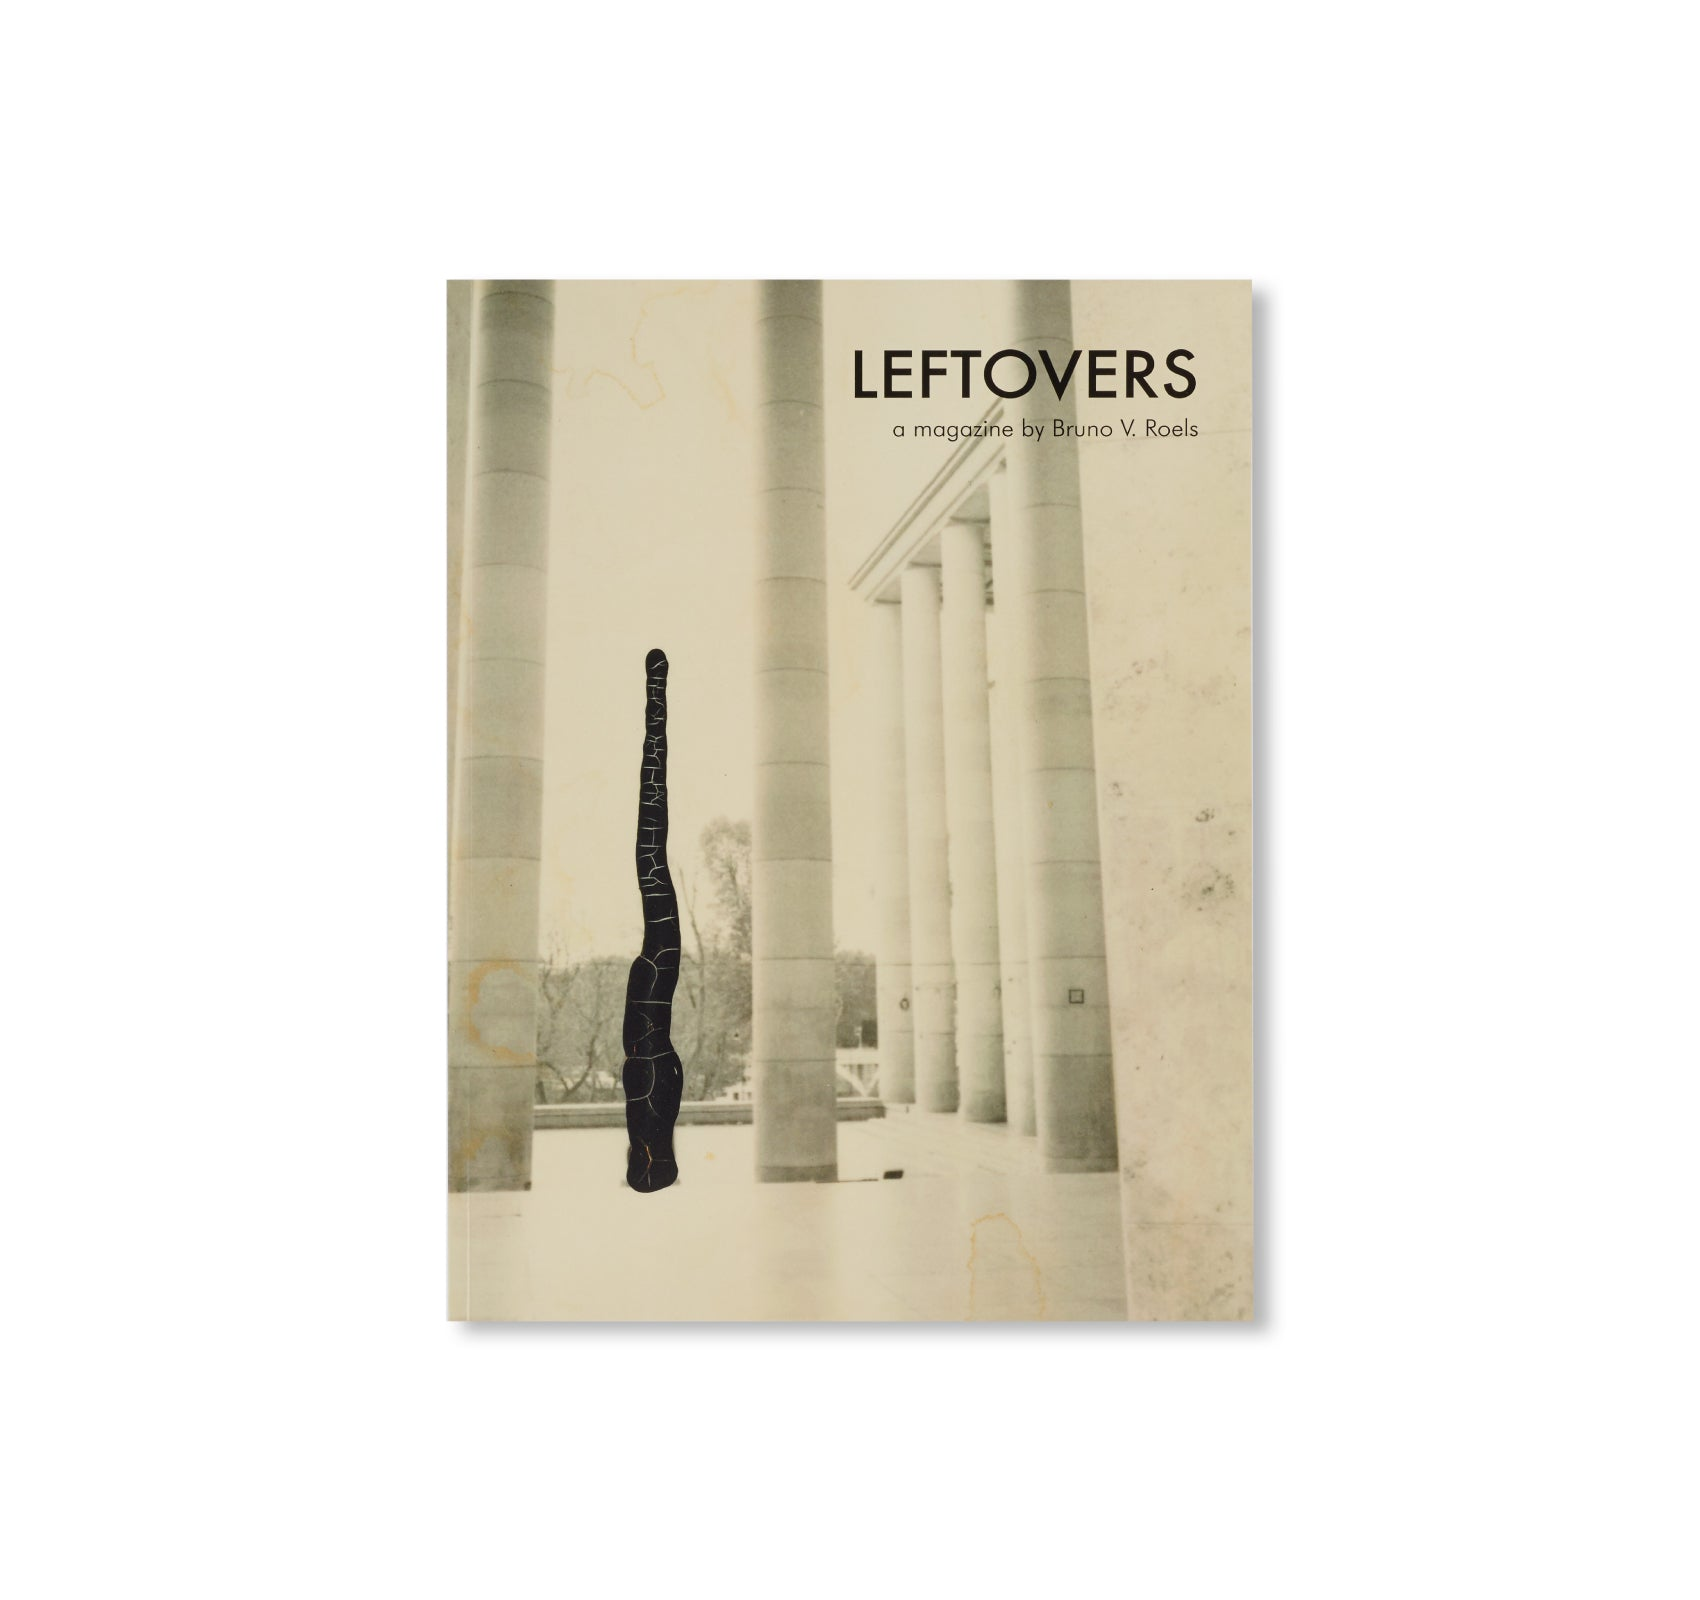 LEFTOVERS by Bruno V. Roels